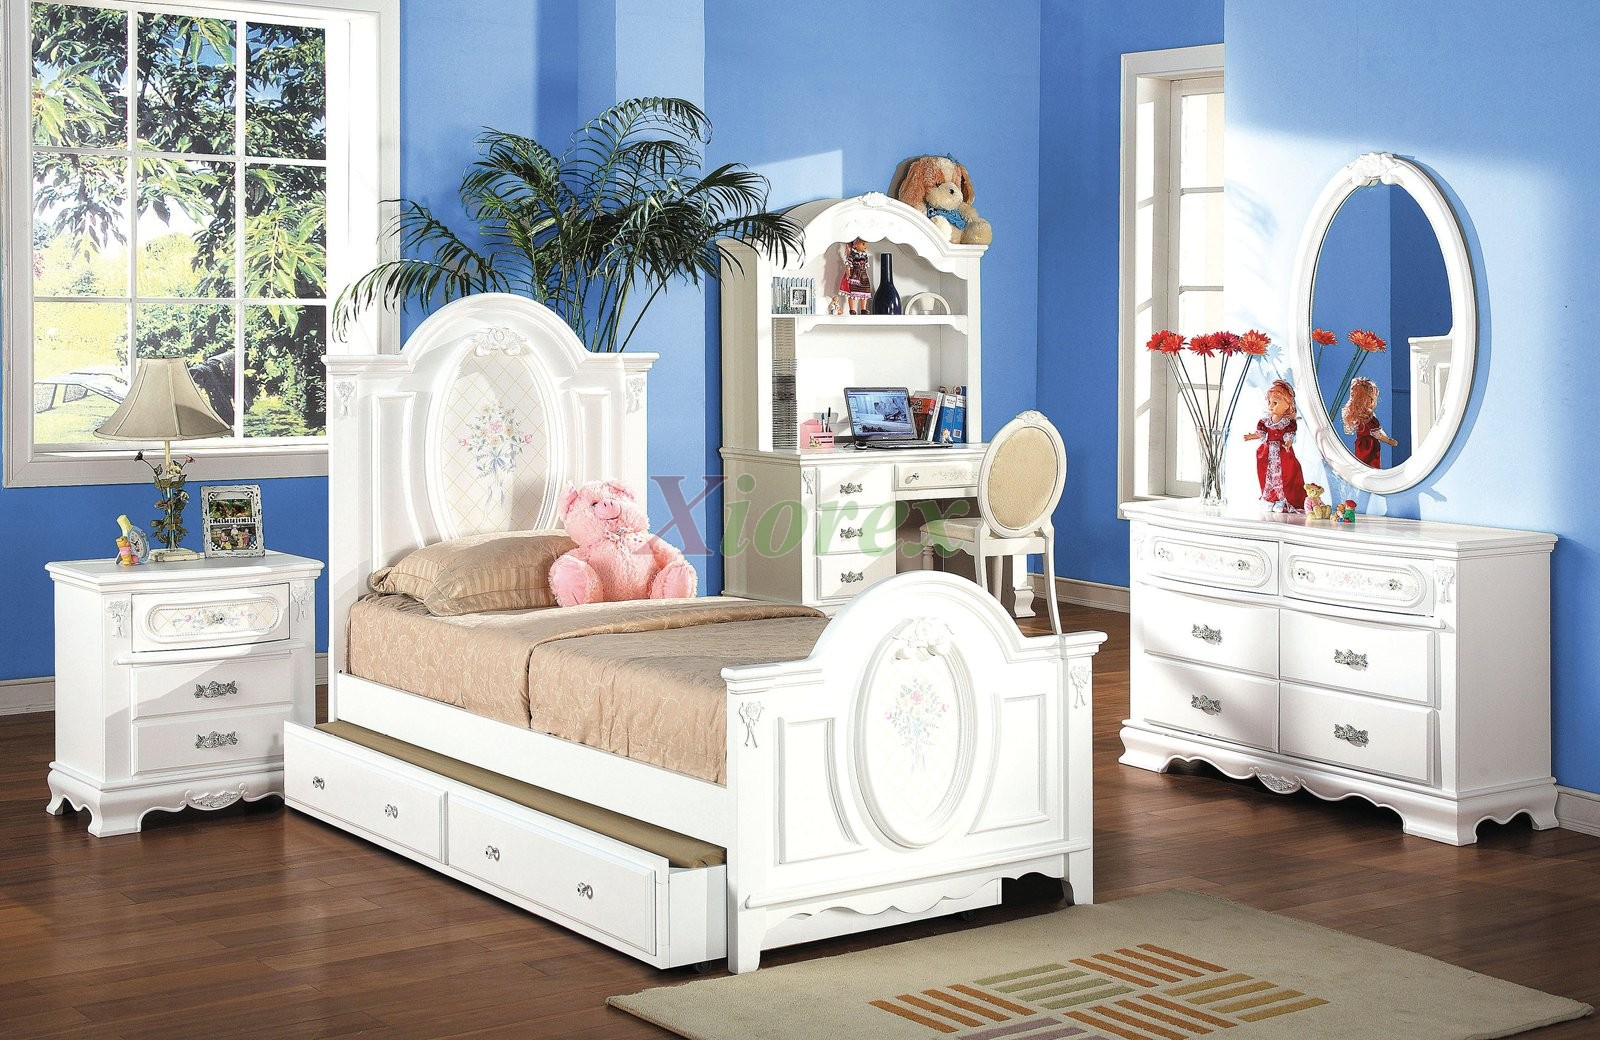 kids bedroom furniture set with trundle bed and hutch 174 xiorex - Kids Bedroom Furniture Sets